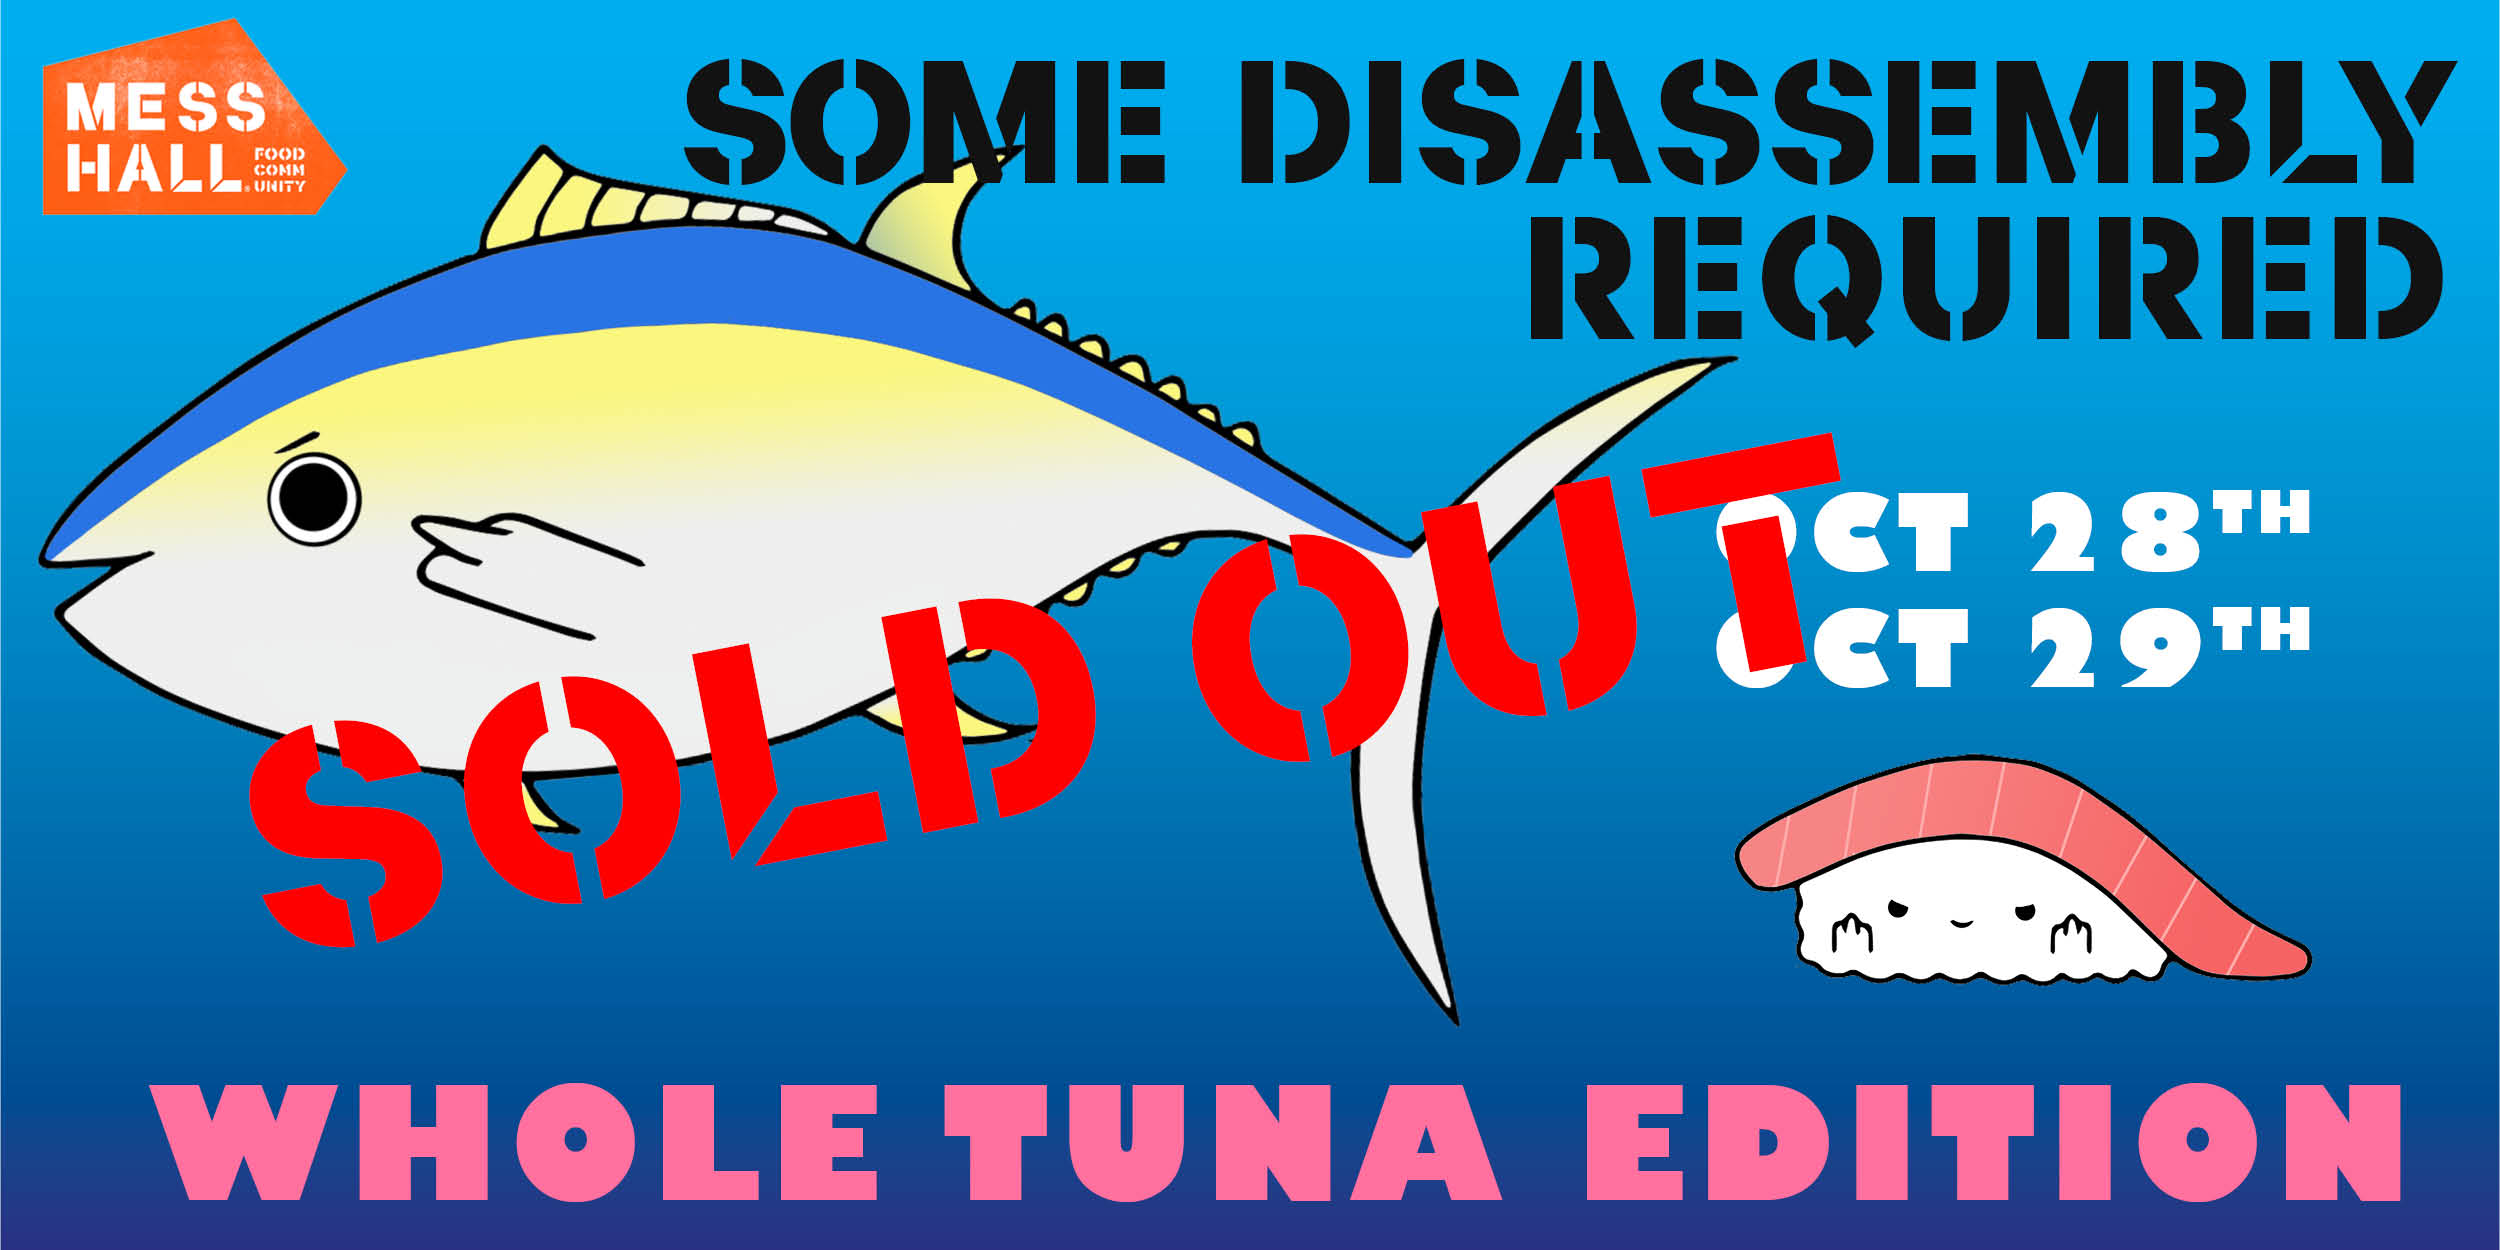 WAITLIST ONLY - SOME DISASSEMBLY TUNA